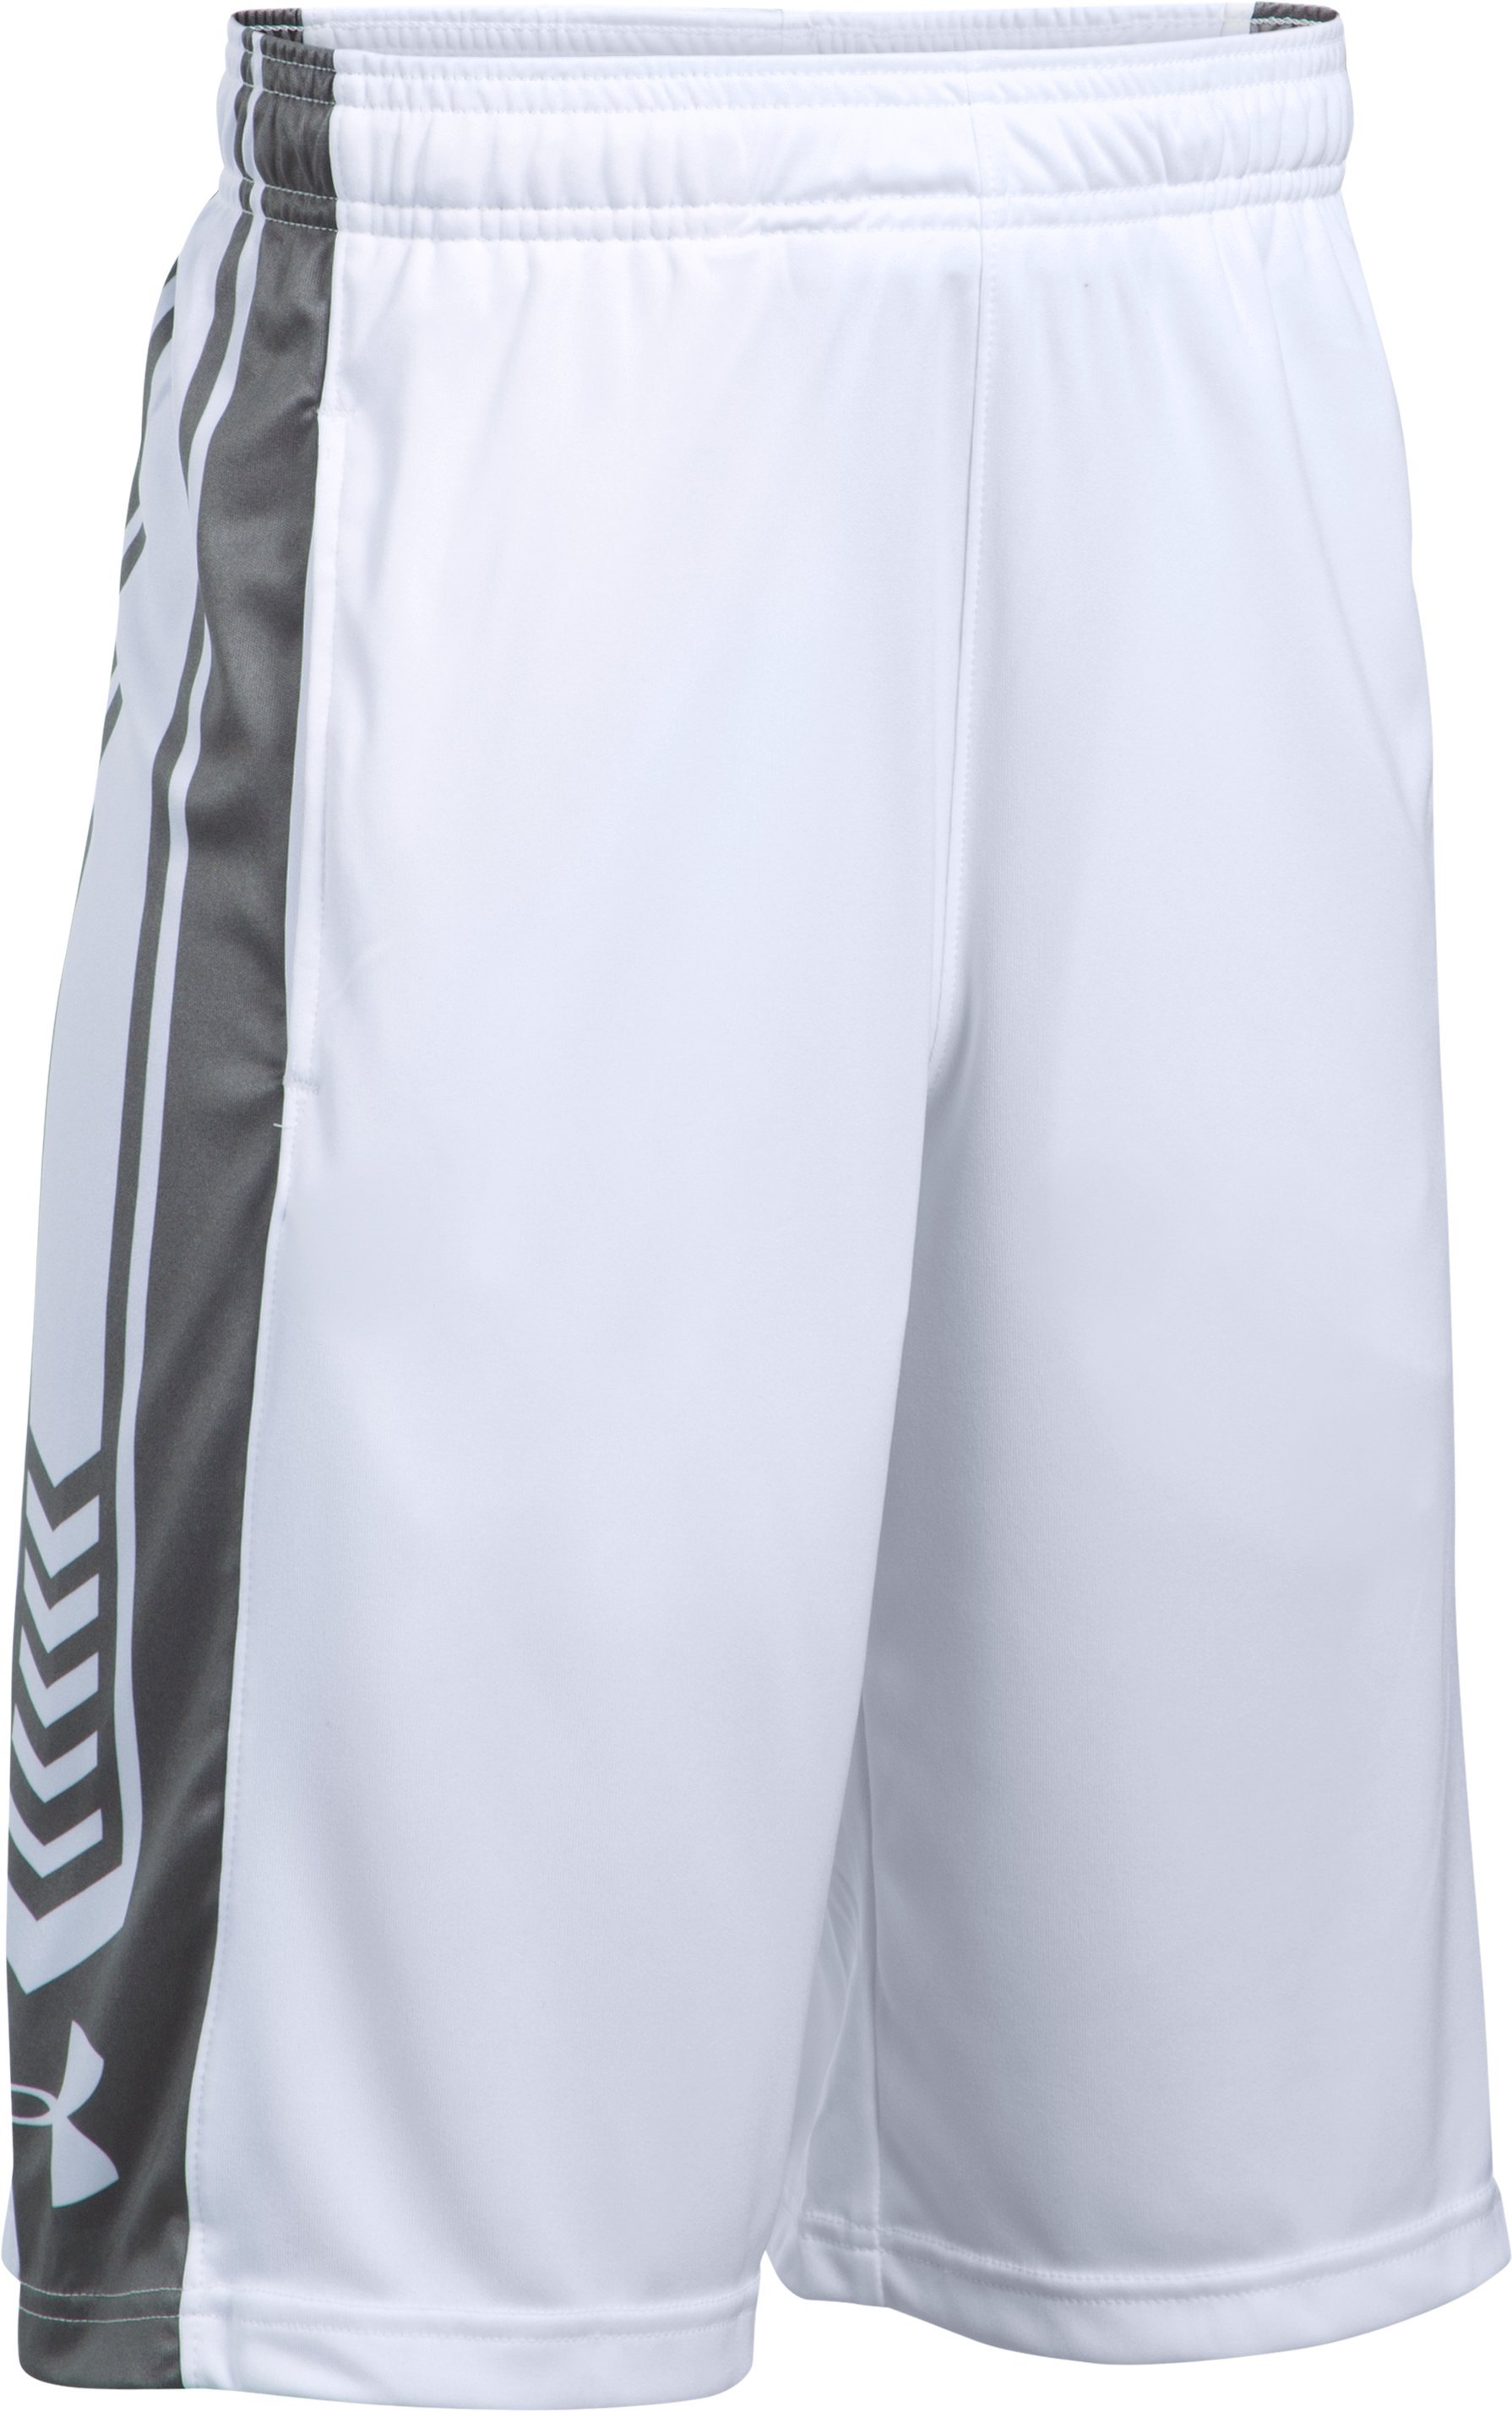 boy camo shorts Boys' UA Obi-Wan Shorts These shorts are great!...Pockets are a bonus!